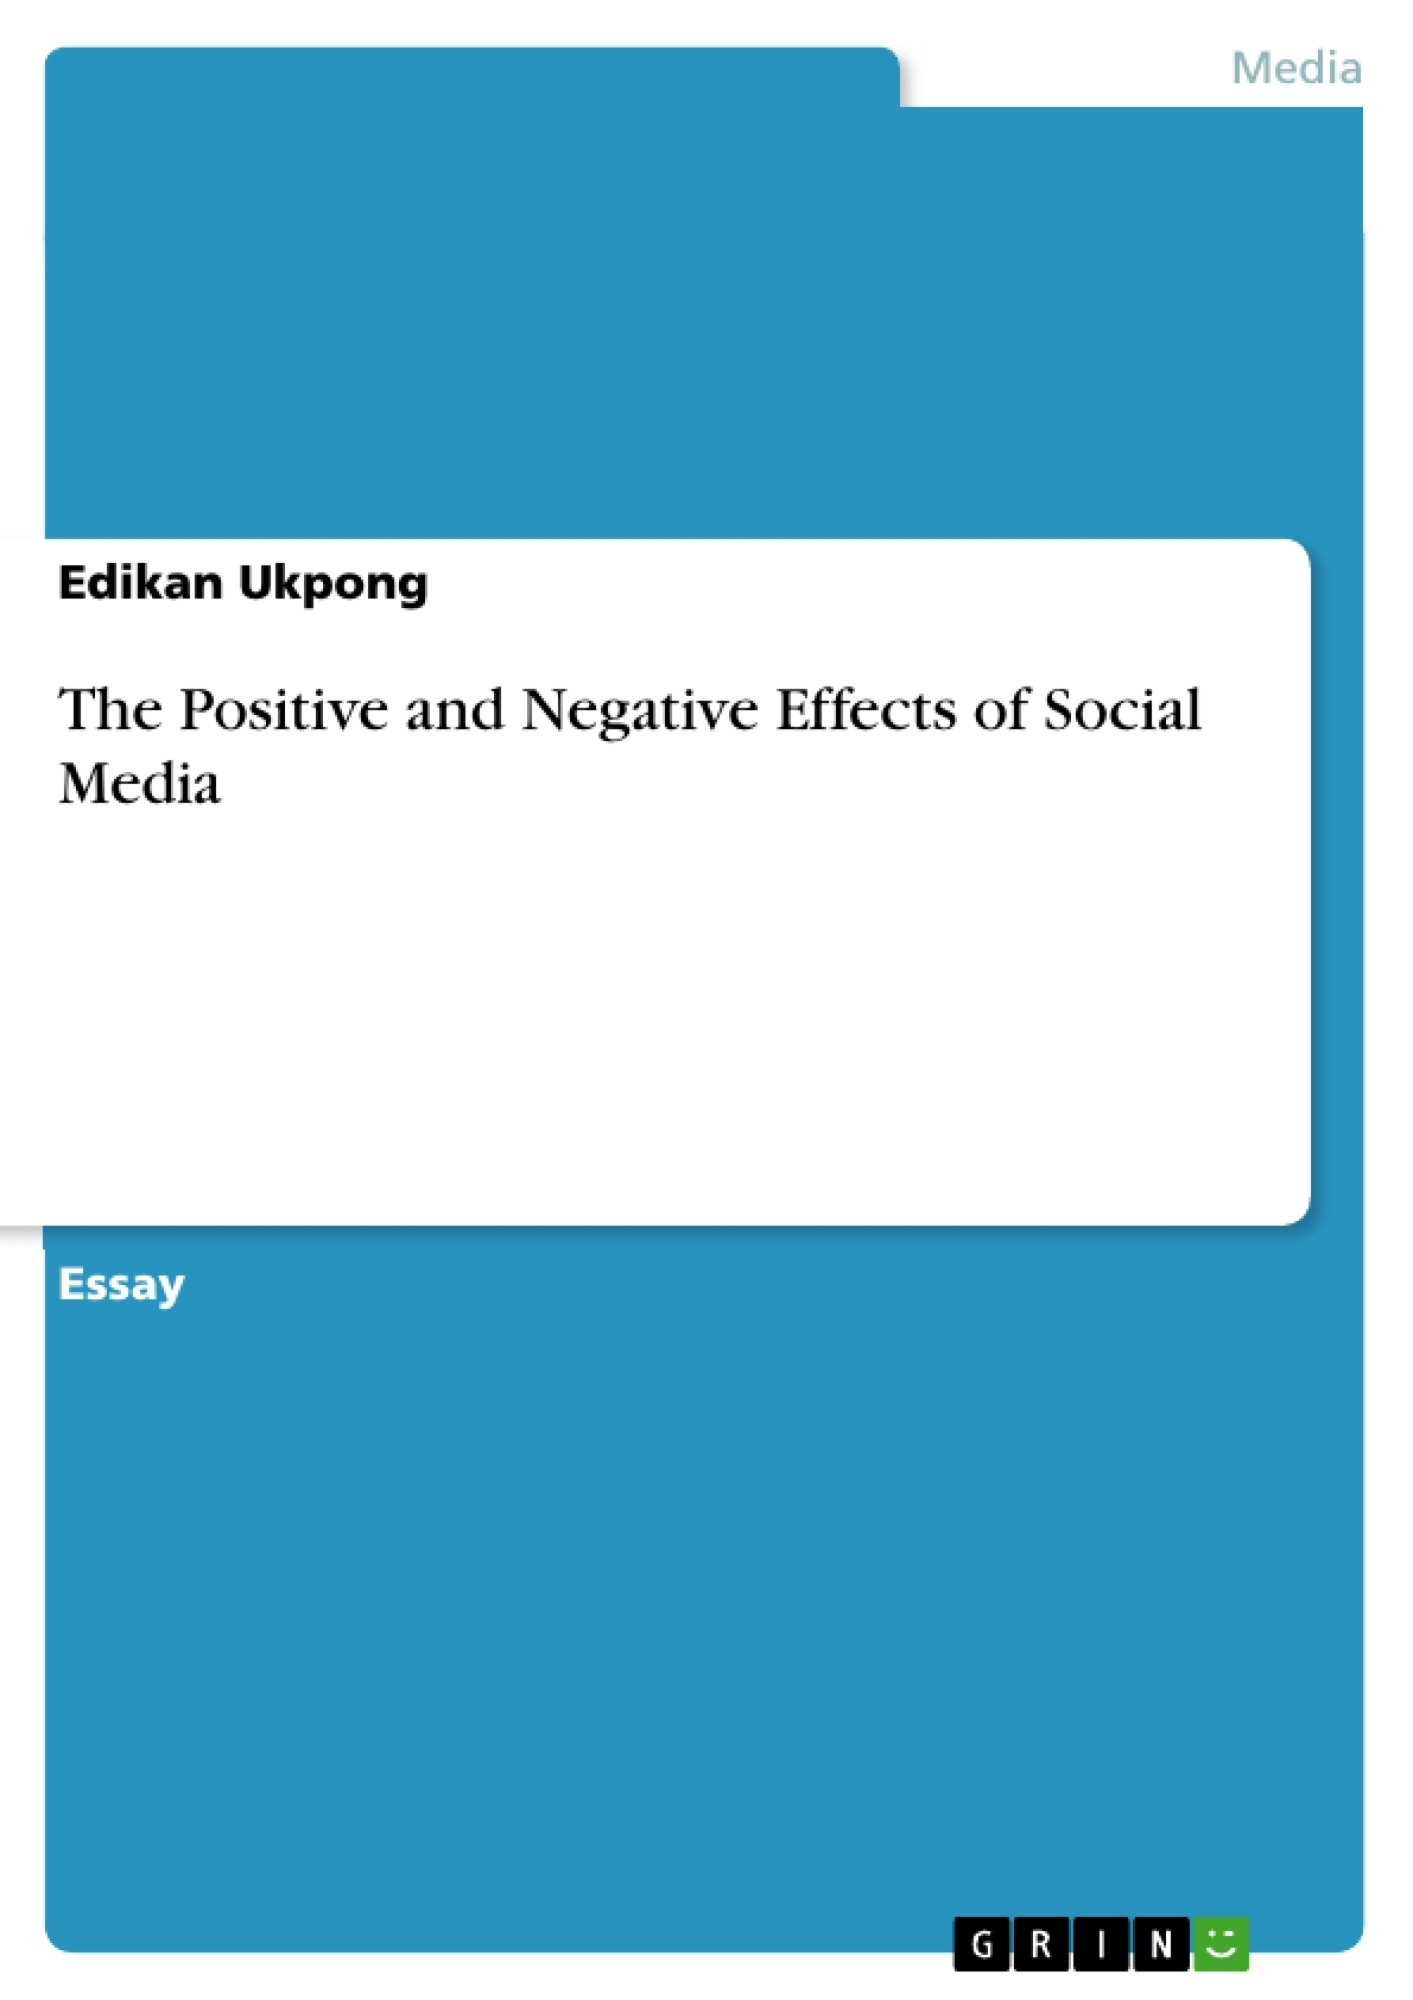 Title: The Positive and Negative Effects of Social Media